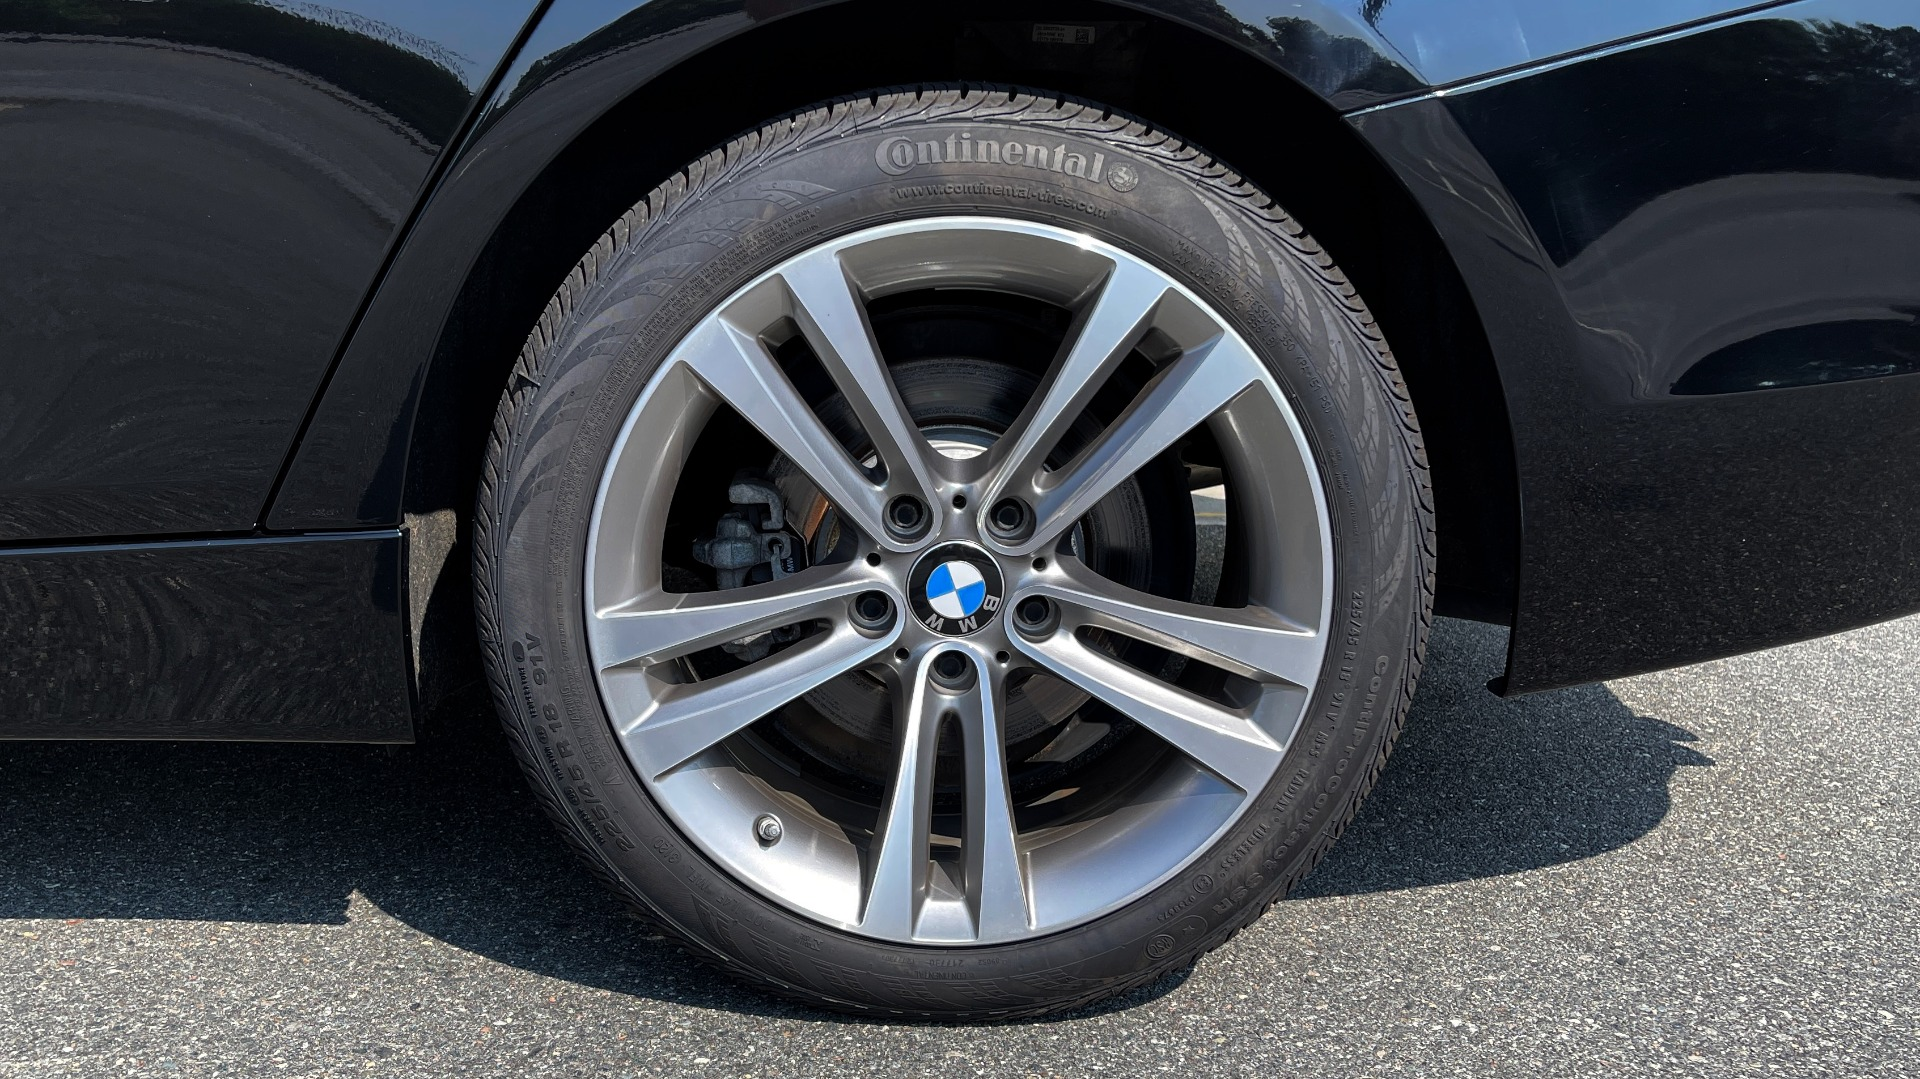 Used 2018 BMW 3 SERIES 330I XDRIVE / CONV PKG / SUNROOF / HTD STS / ABSD / REARVIEW for sale $30,695 at Formula Imports in Charlotte NC 28227 72